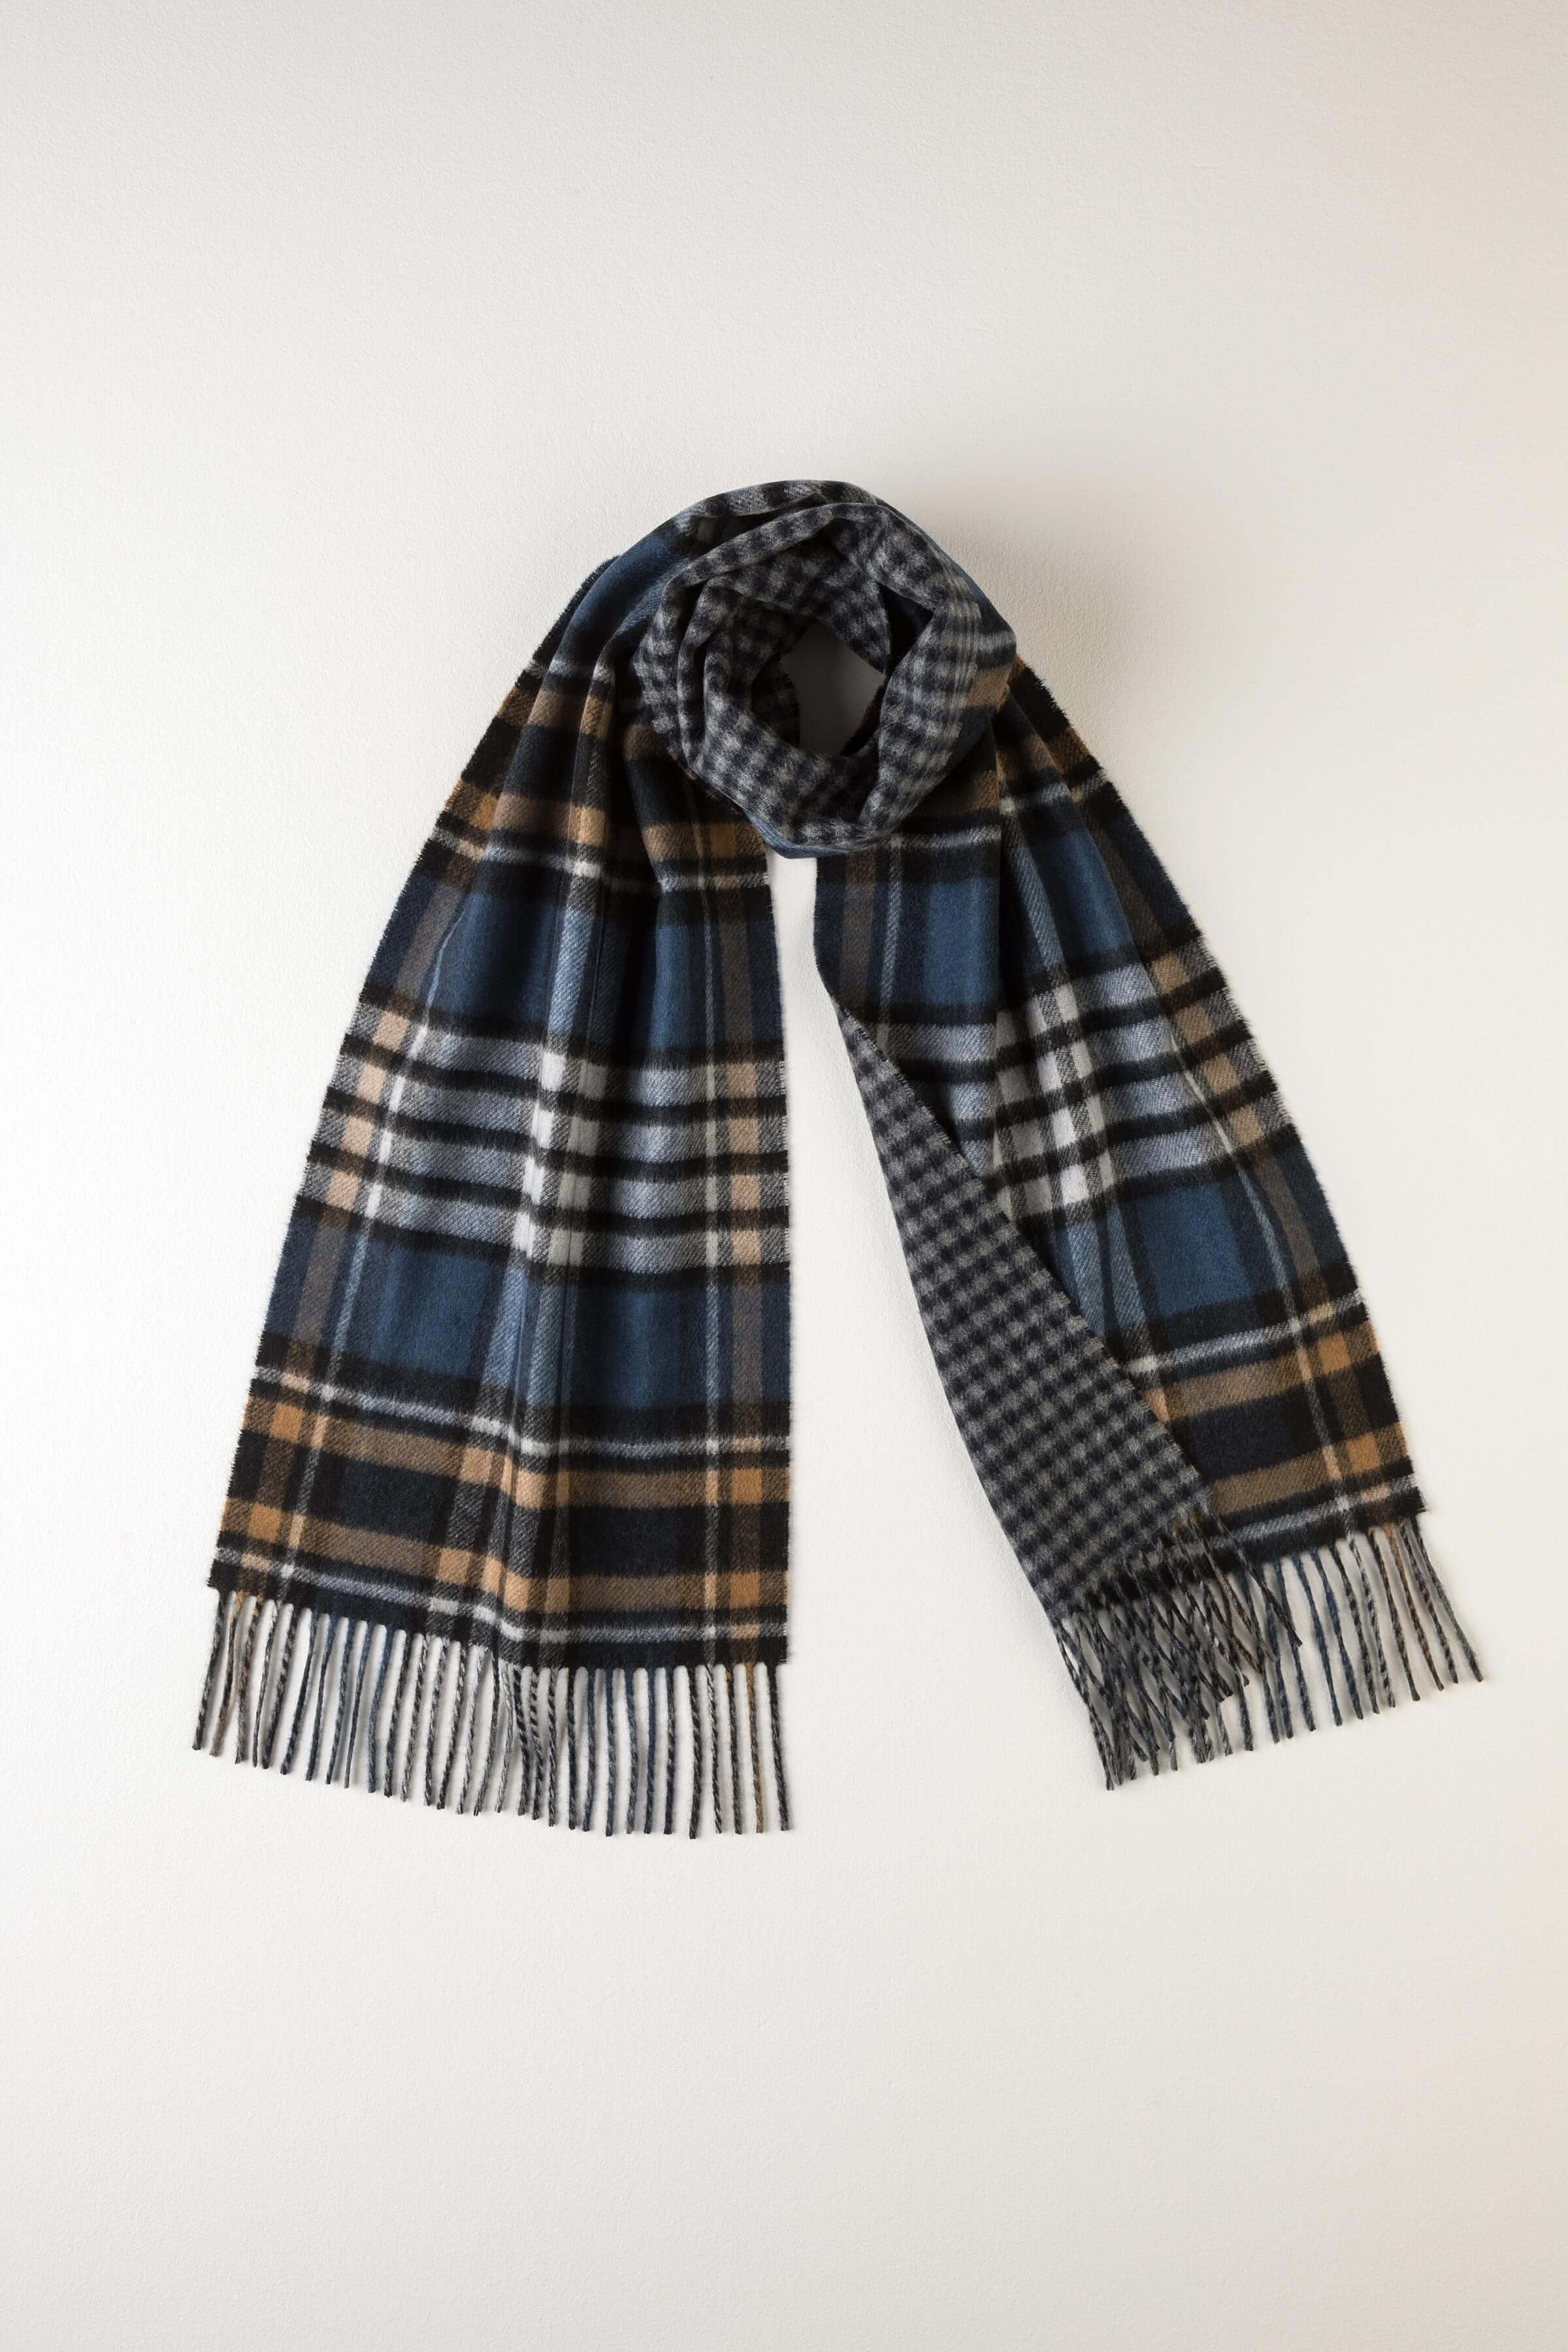 JOHNSTONS OF ELGIN CHECK & GUNCLUB SPORTY REVERSIBLE CASHMERE SCARF